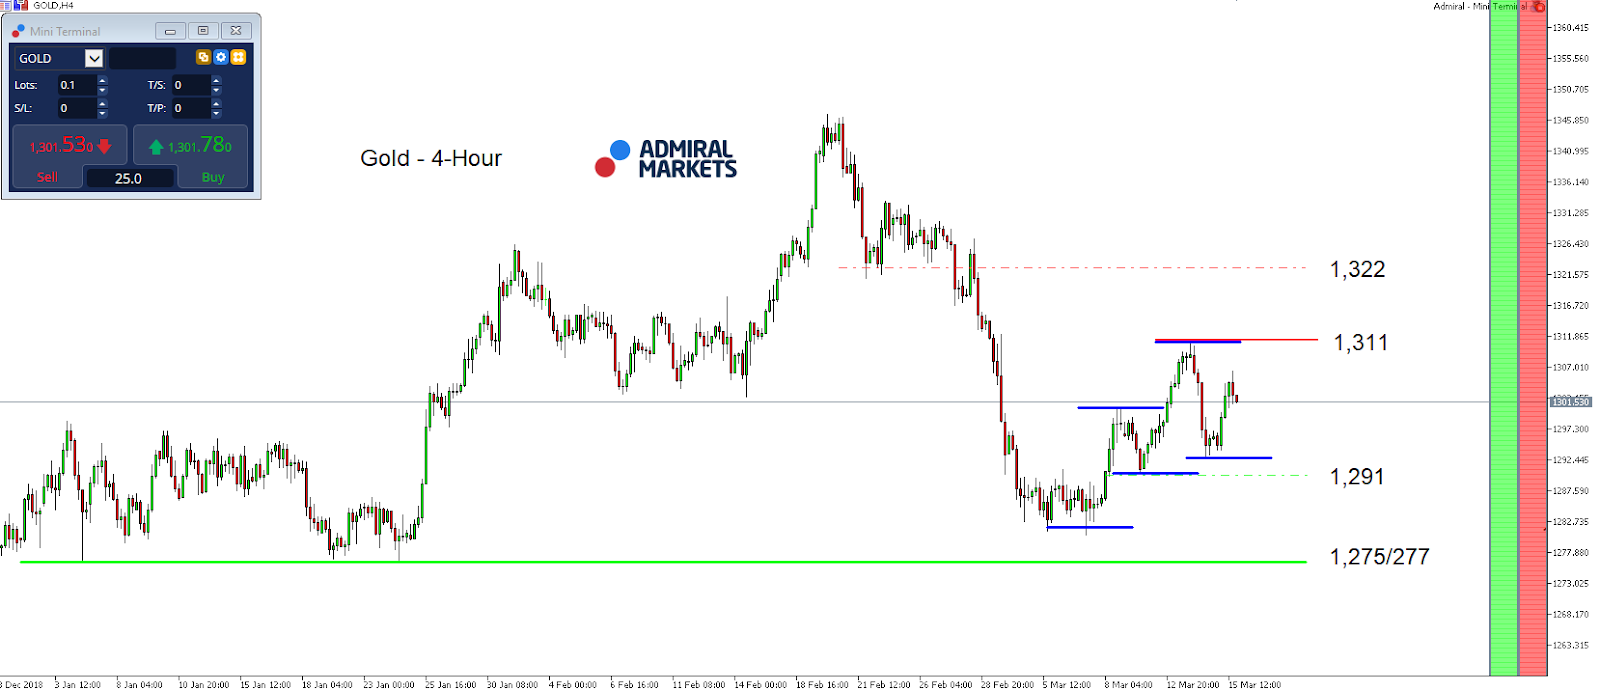 Gold Index 4 hour chart